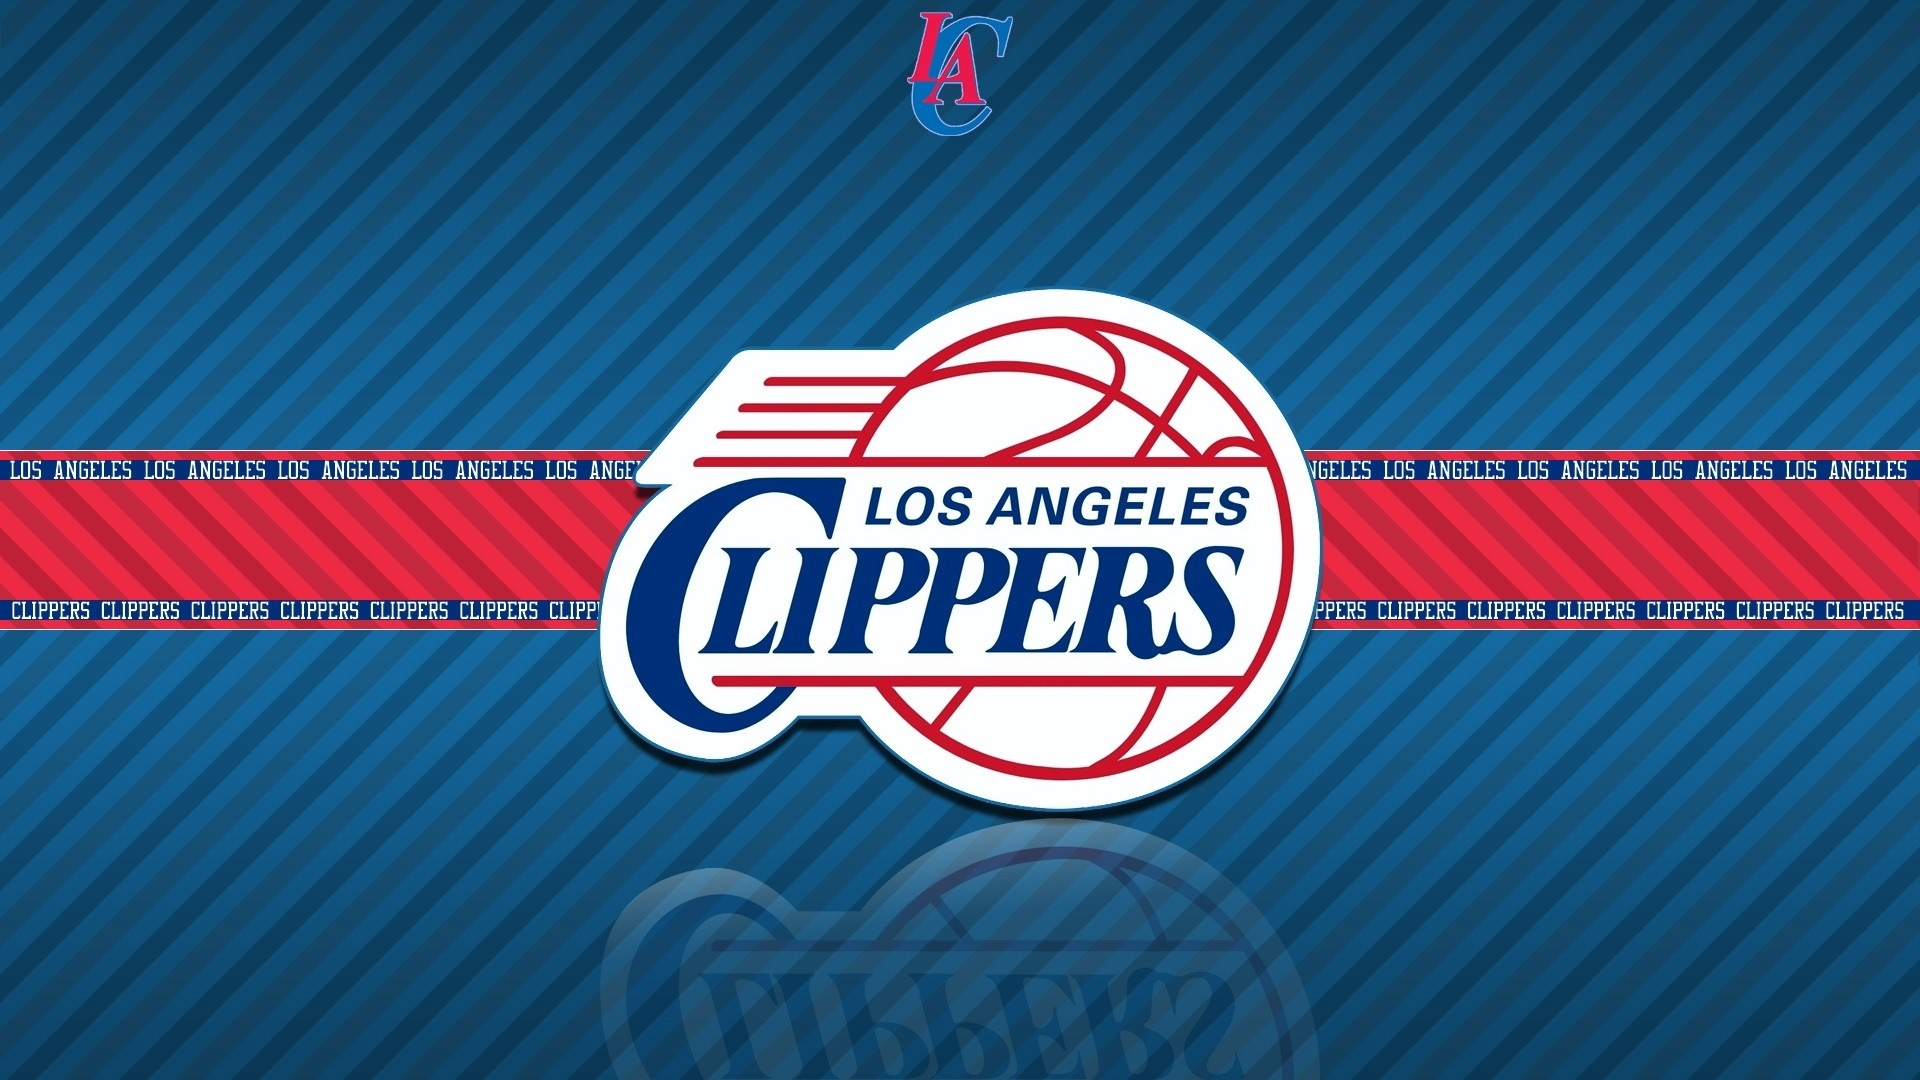 Los Angeles Clippers PC Wallpaper HD